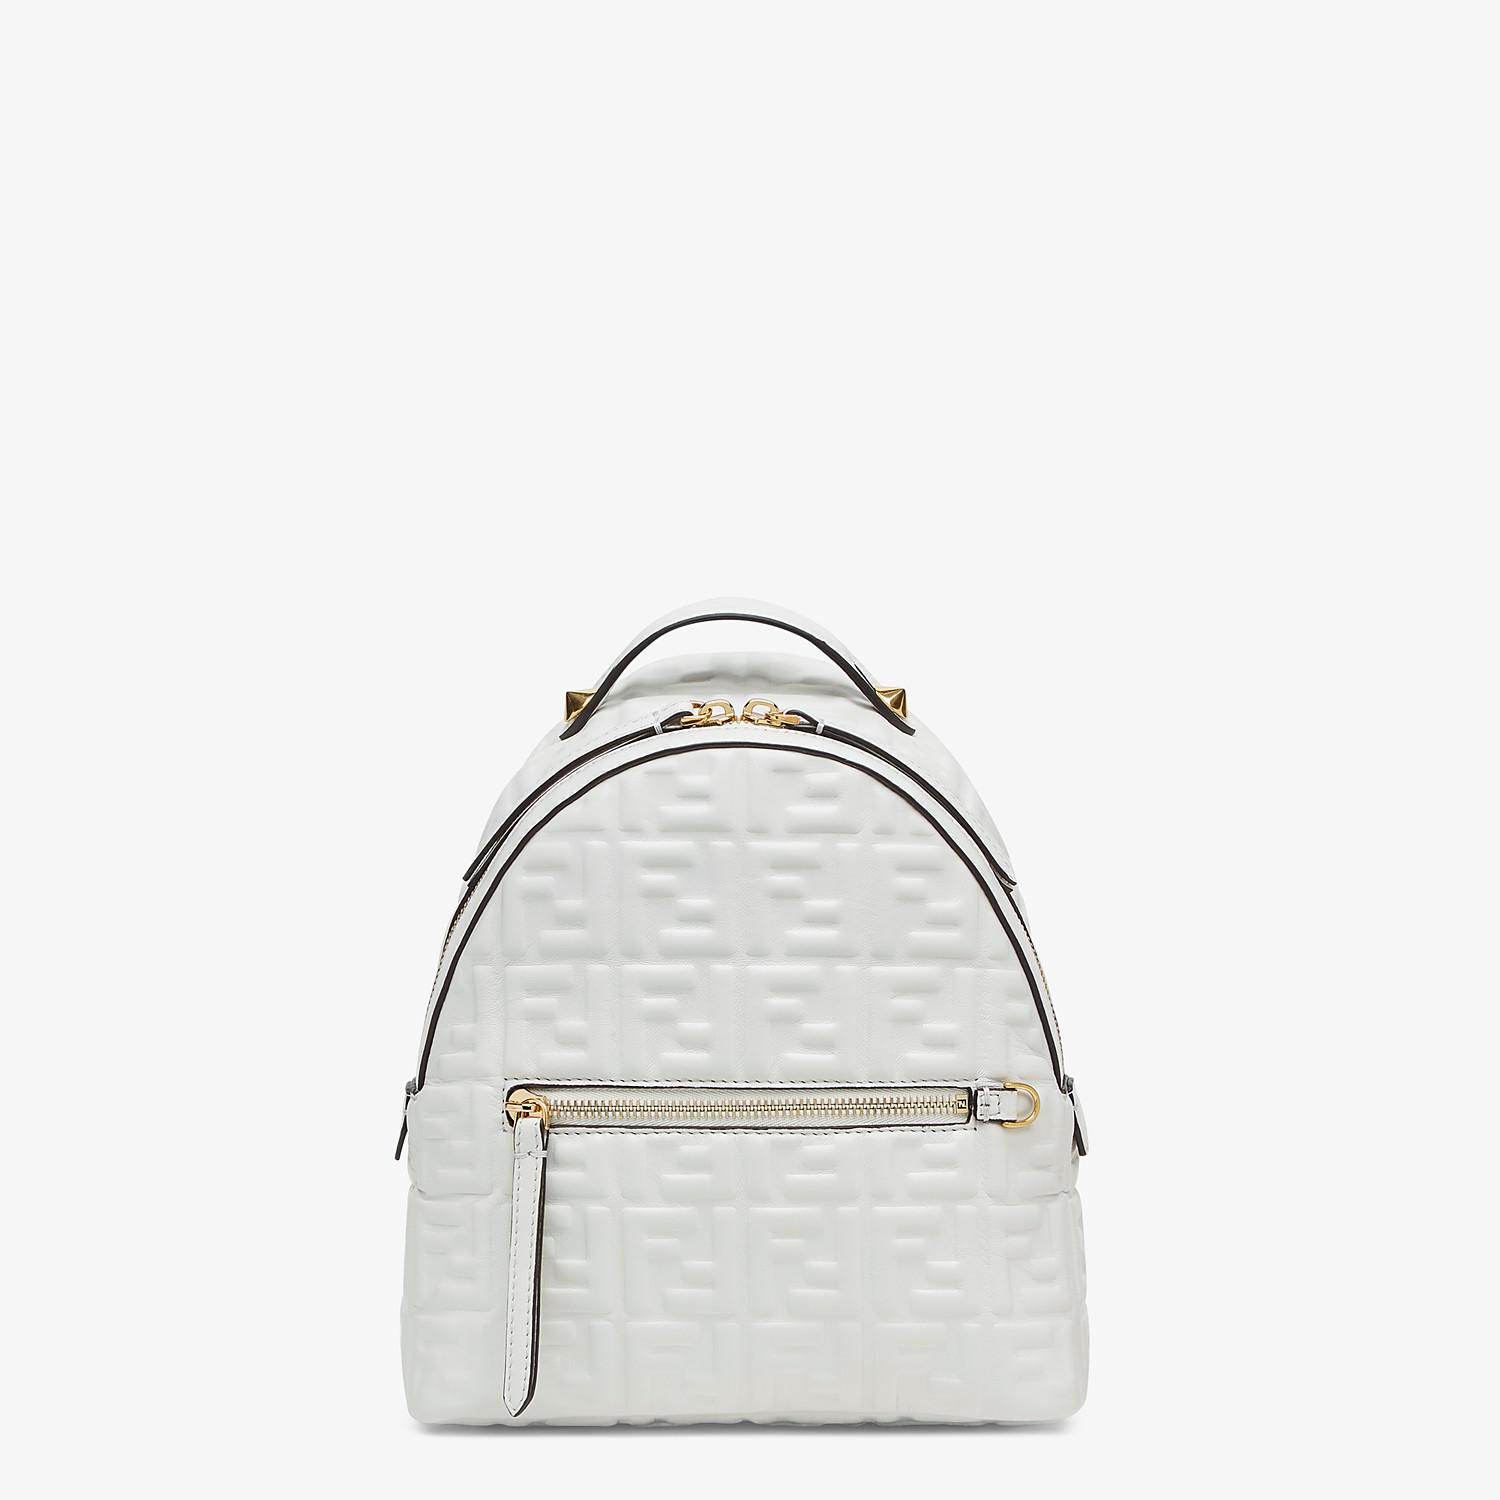 FENDI MINI BACKPACK - White FF leather backpack - view 1 detail